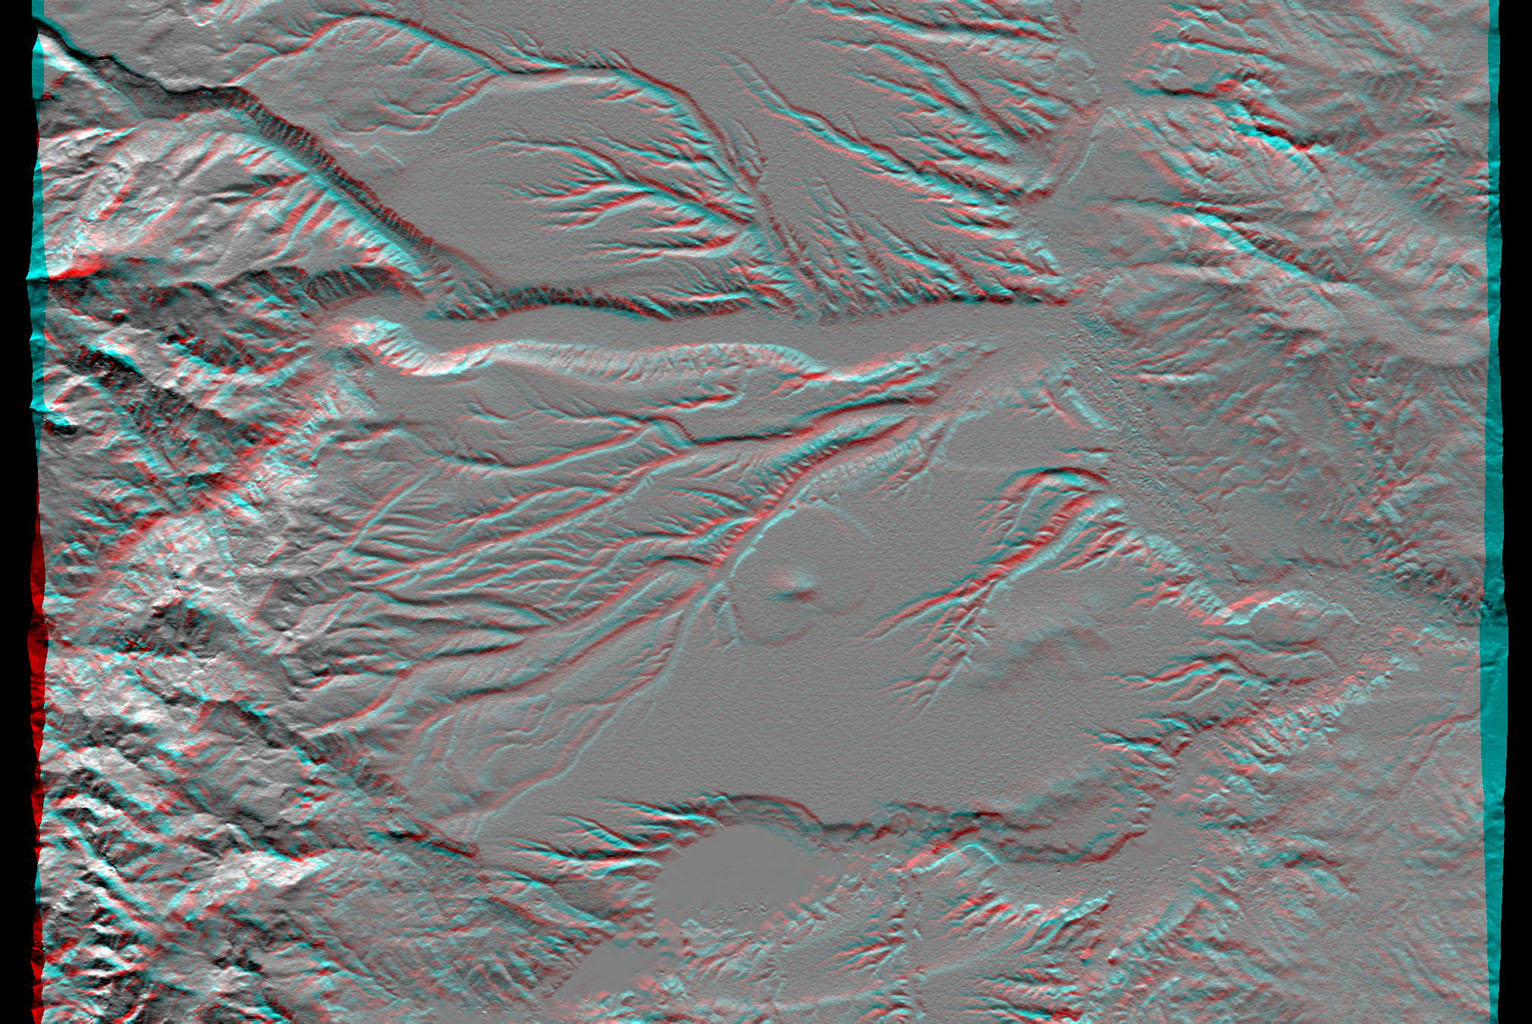 This anaglyph, from NASA's Shuttle Radar Topography Mission, shows the eastern flank of the Andes Mountains, southeast of San Martin de Los Andes, Argentina. 3D glasses are necessary to view this image.